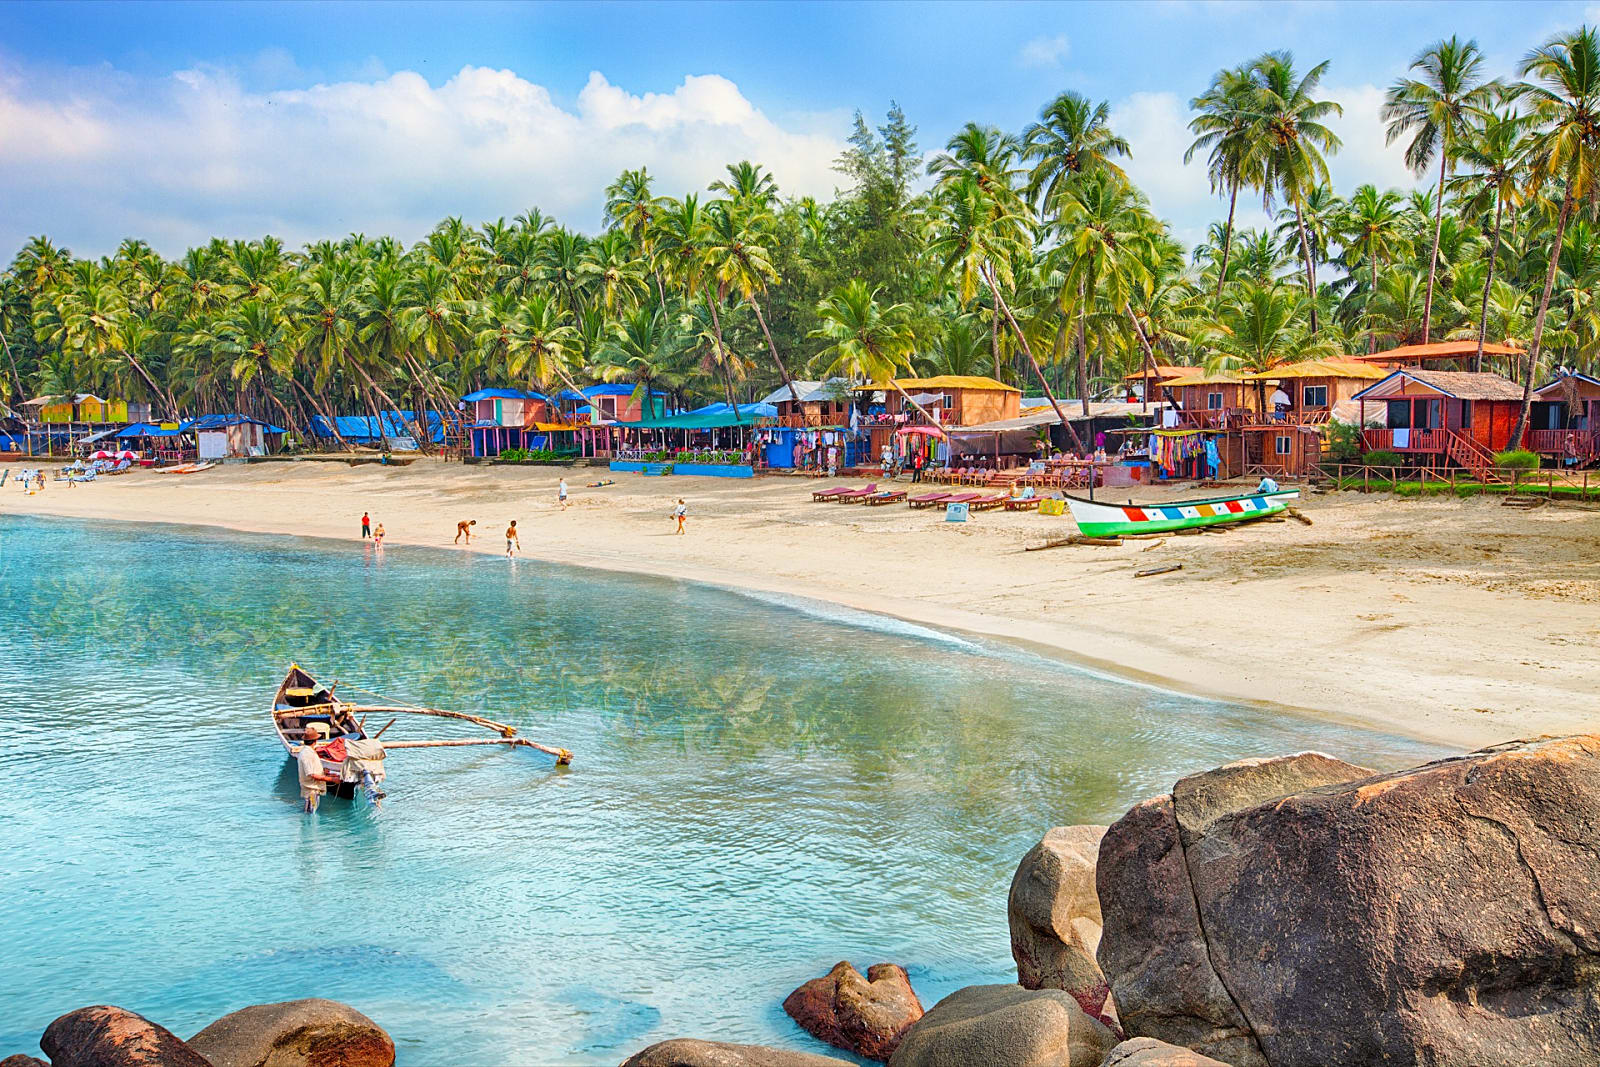 Why Goa is Famous as India's Most Popular Tourist Destination?